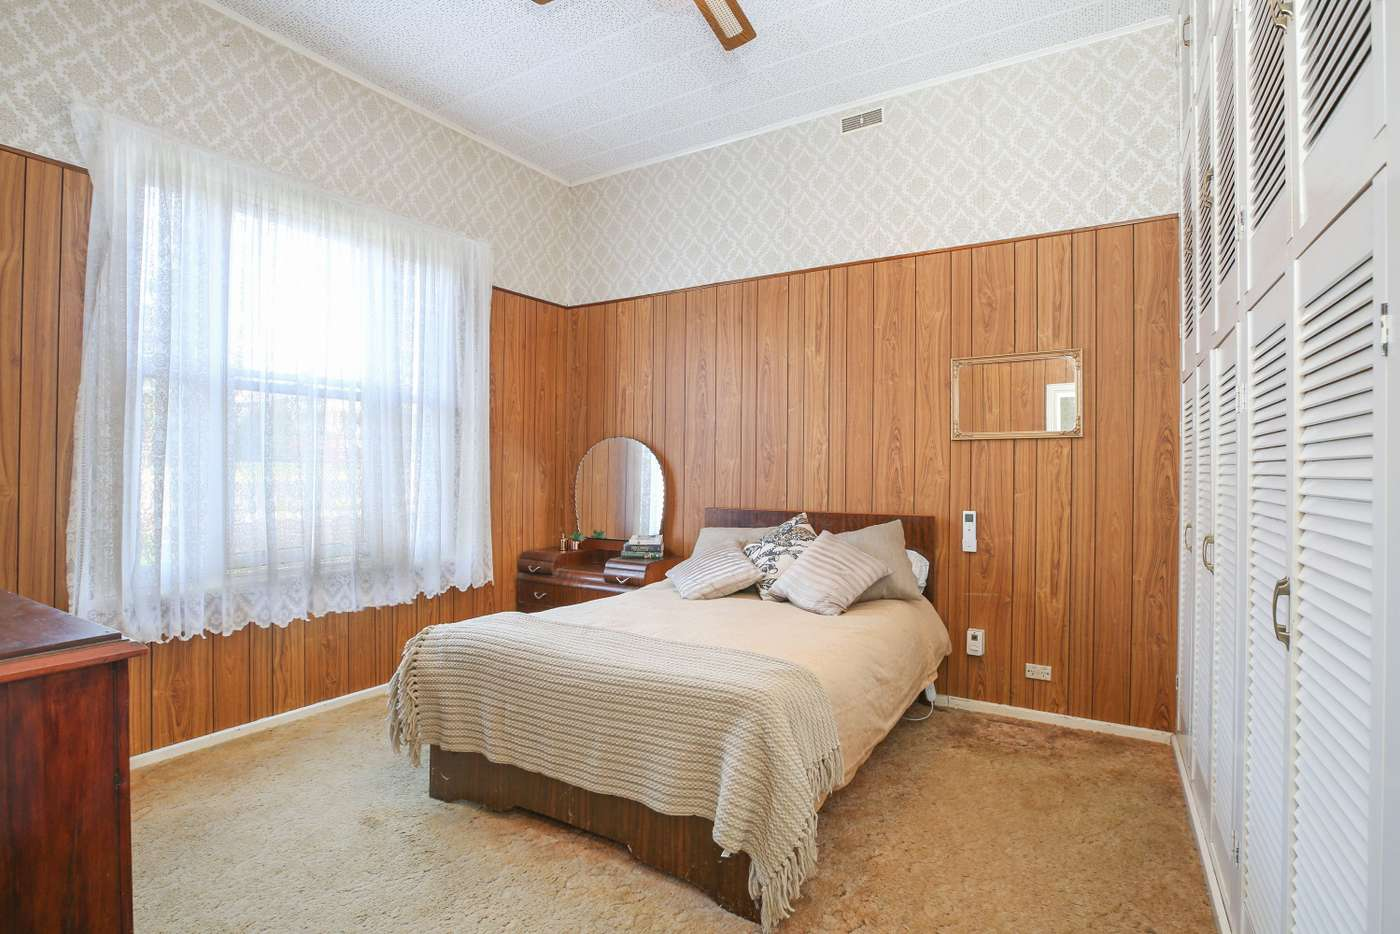 Sixth view of Homely house listing, 18 Hopetoun Street, Camperdown VIC 3260